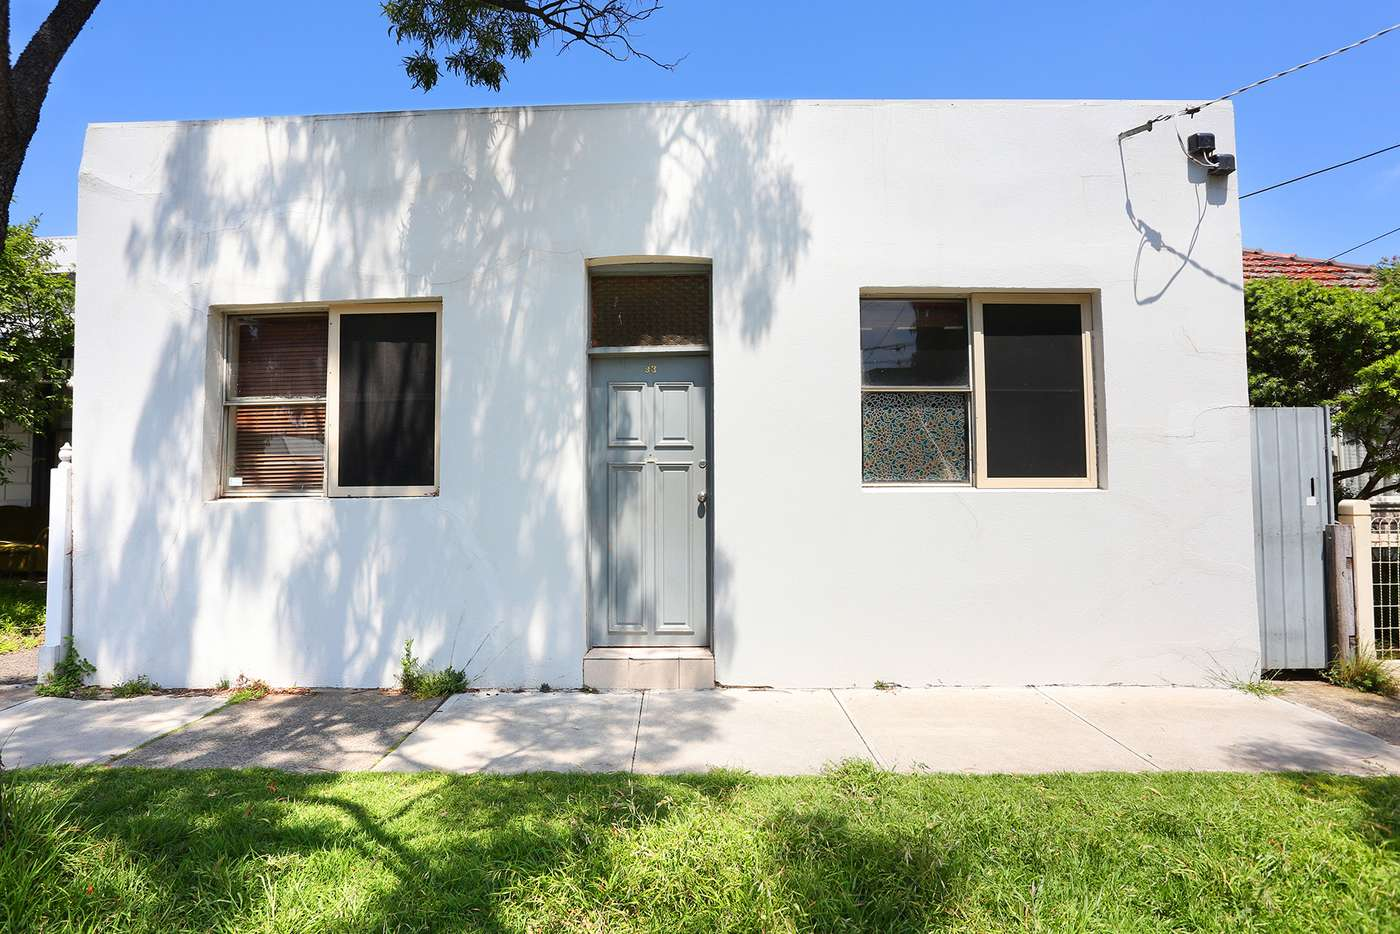 Main view of Homely house listing, 93 Union Street, Brunswick VIC 3056